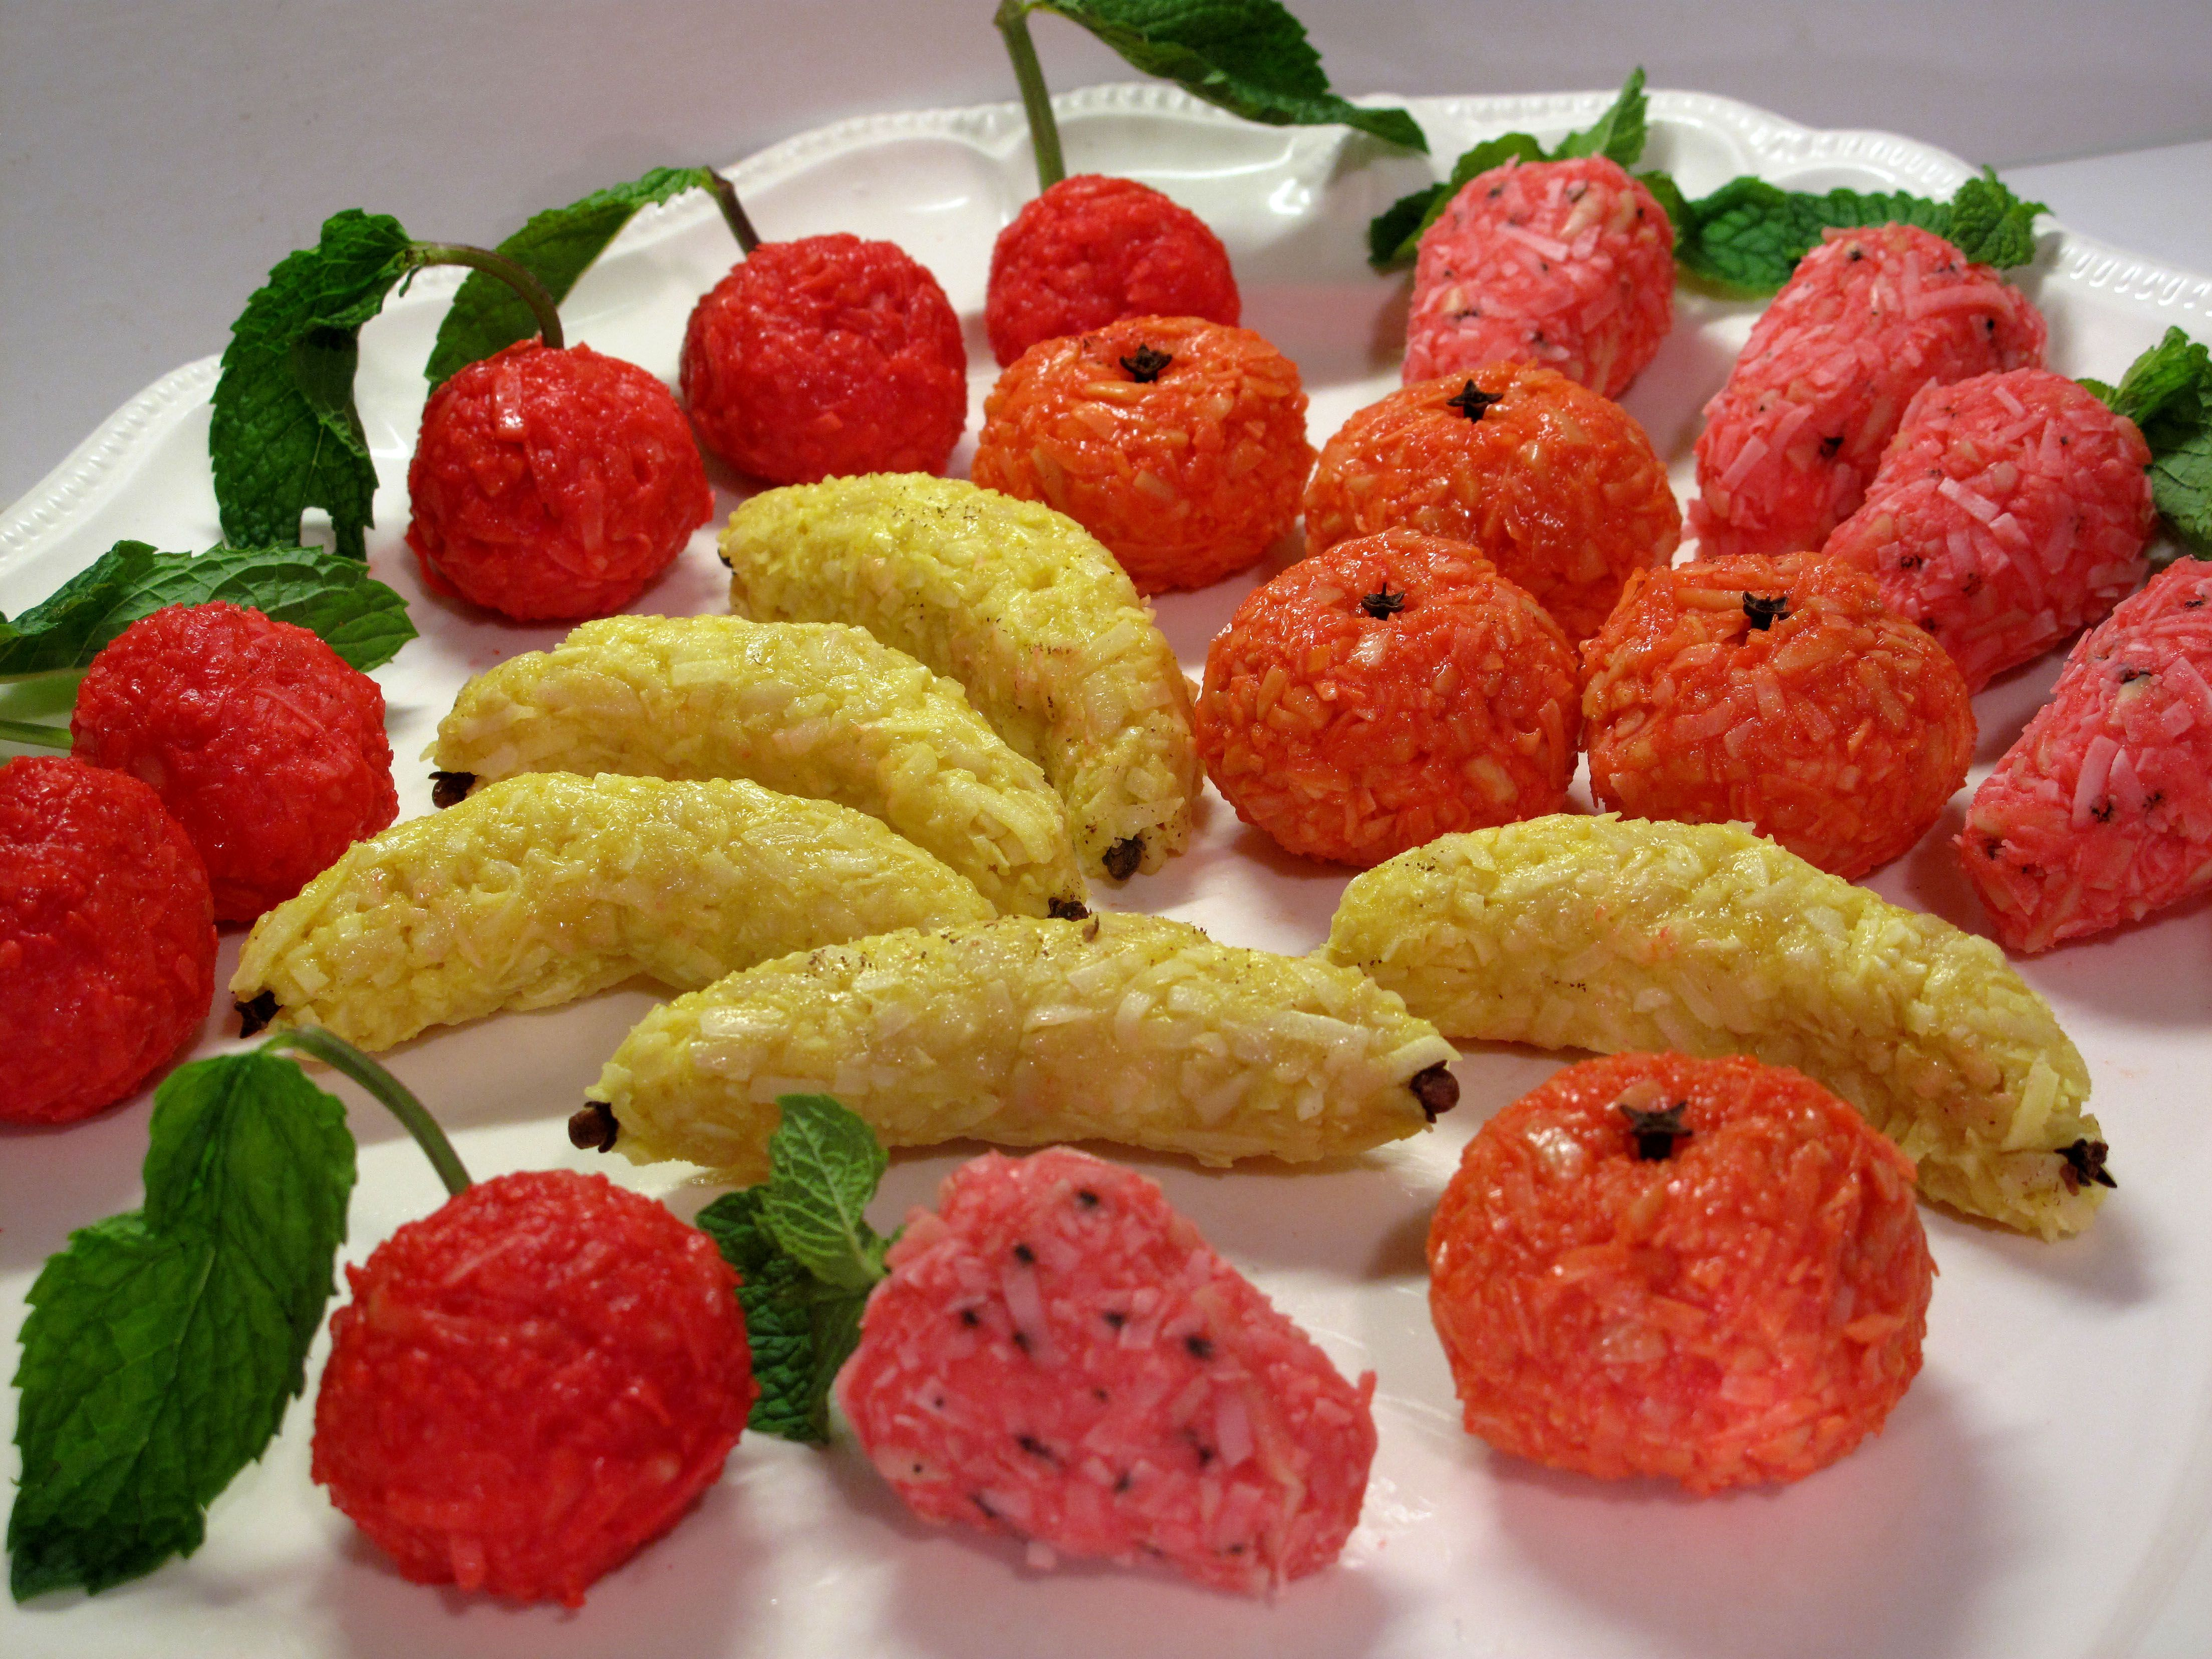 Cake decorations - faux marzipan with coconut & jello flavor